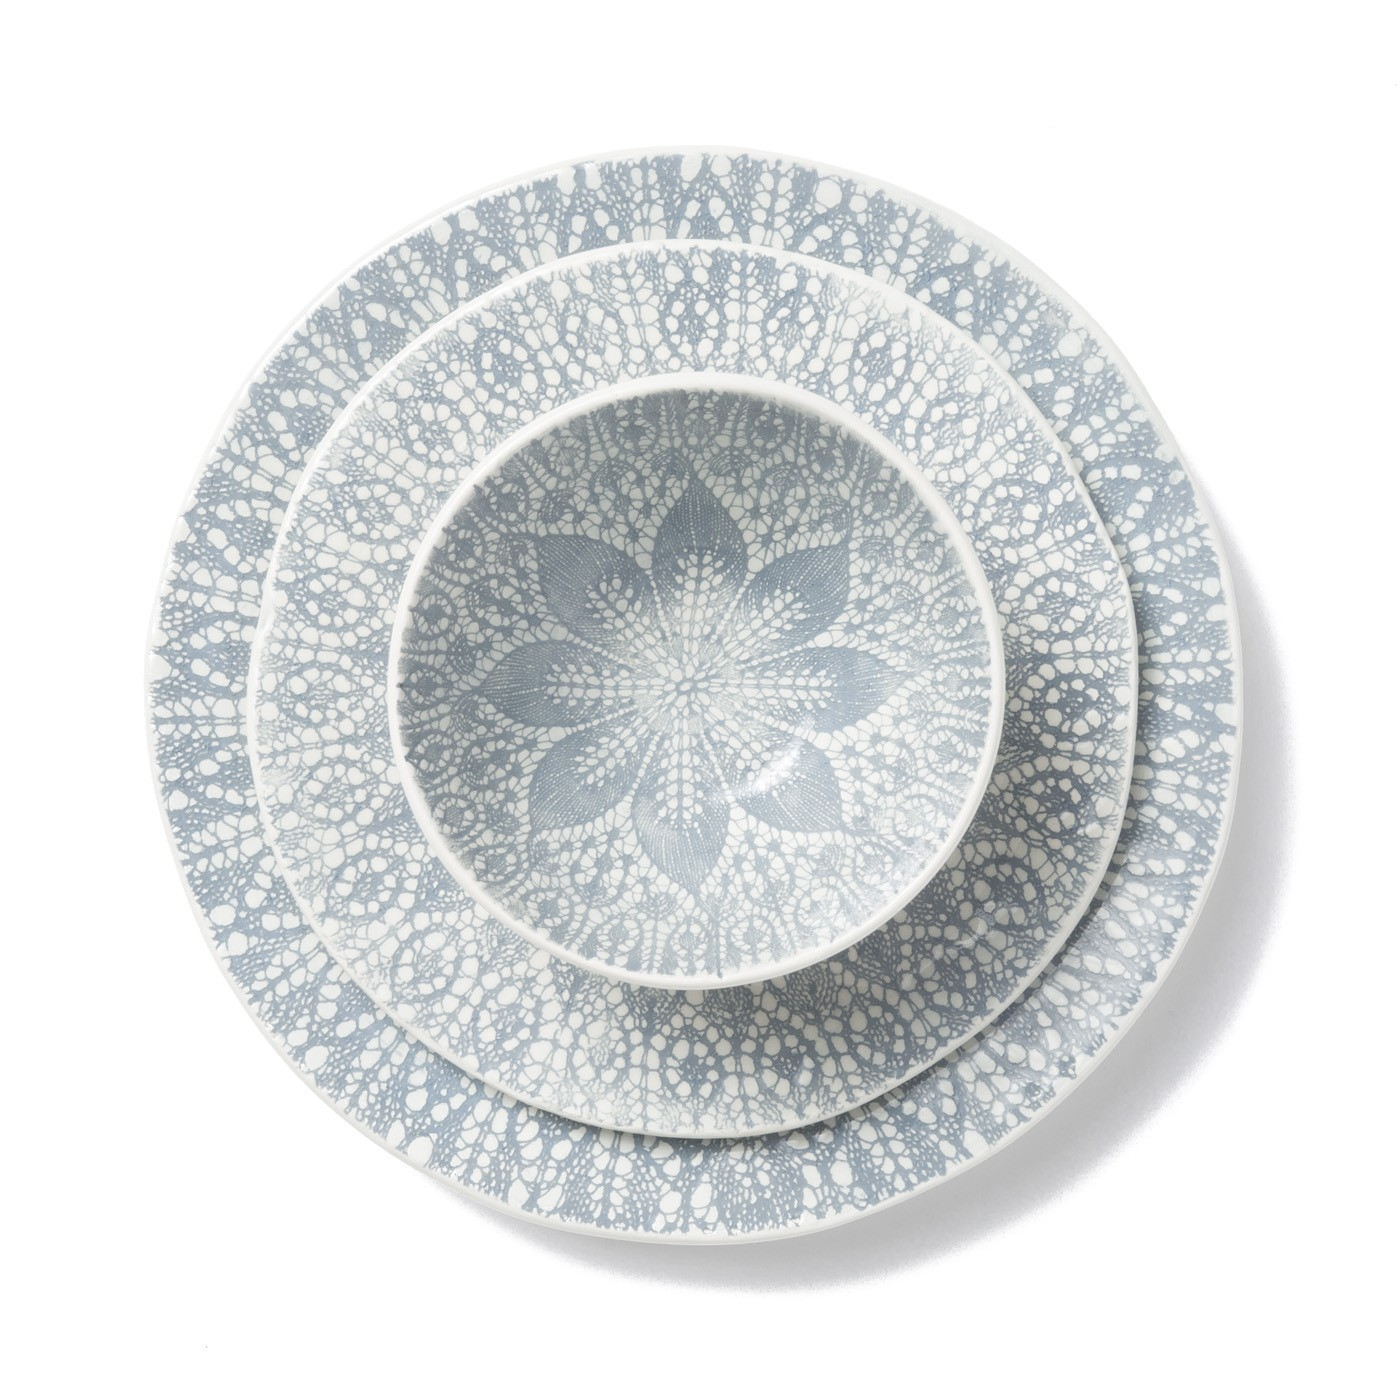 Lace Gray 3-piece Place Setting - 6 in. -11.25 in. d  sc 1 st  Gracious Style & Vietri Lace Gray Dinnerware   Gracious Style